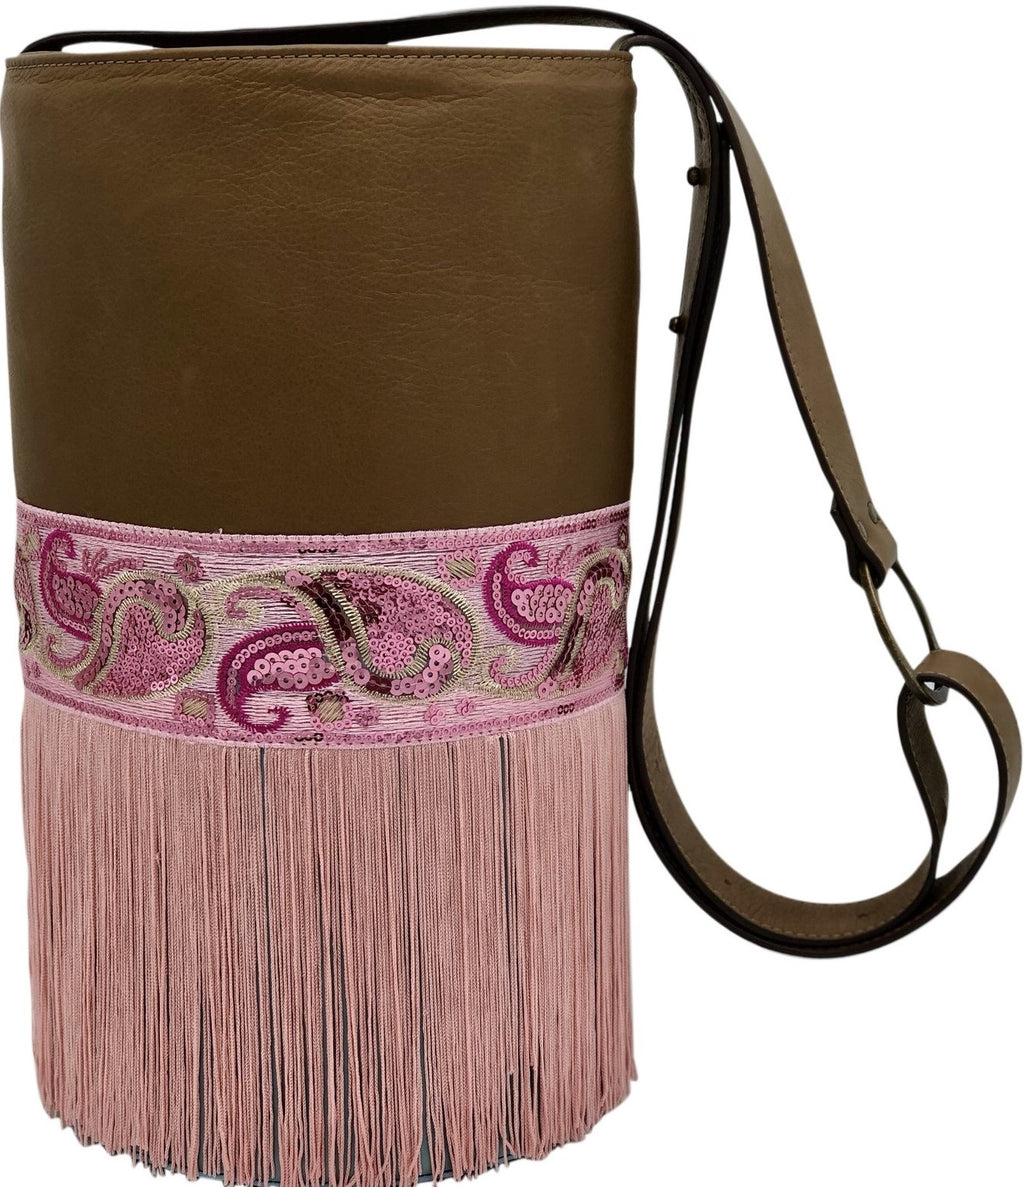 "Brown & blue leather bag with sequins and fringes. ""Fairies Dance""."